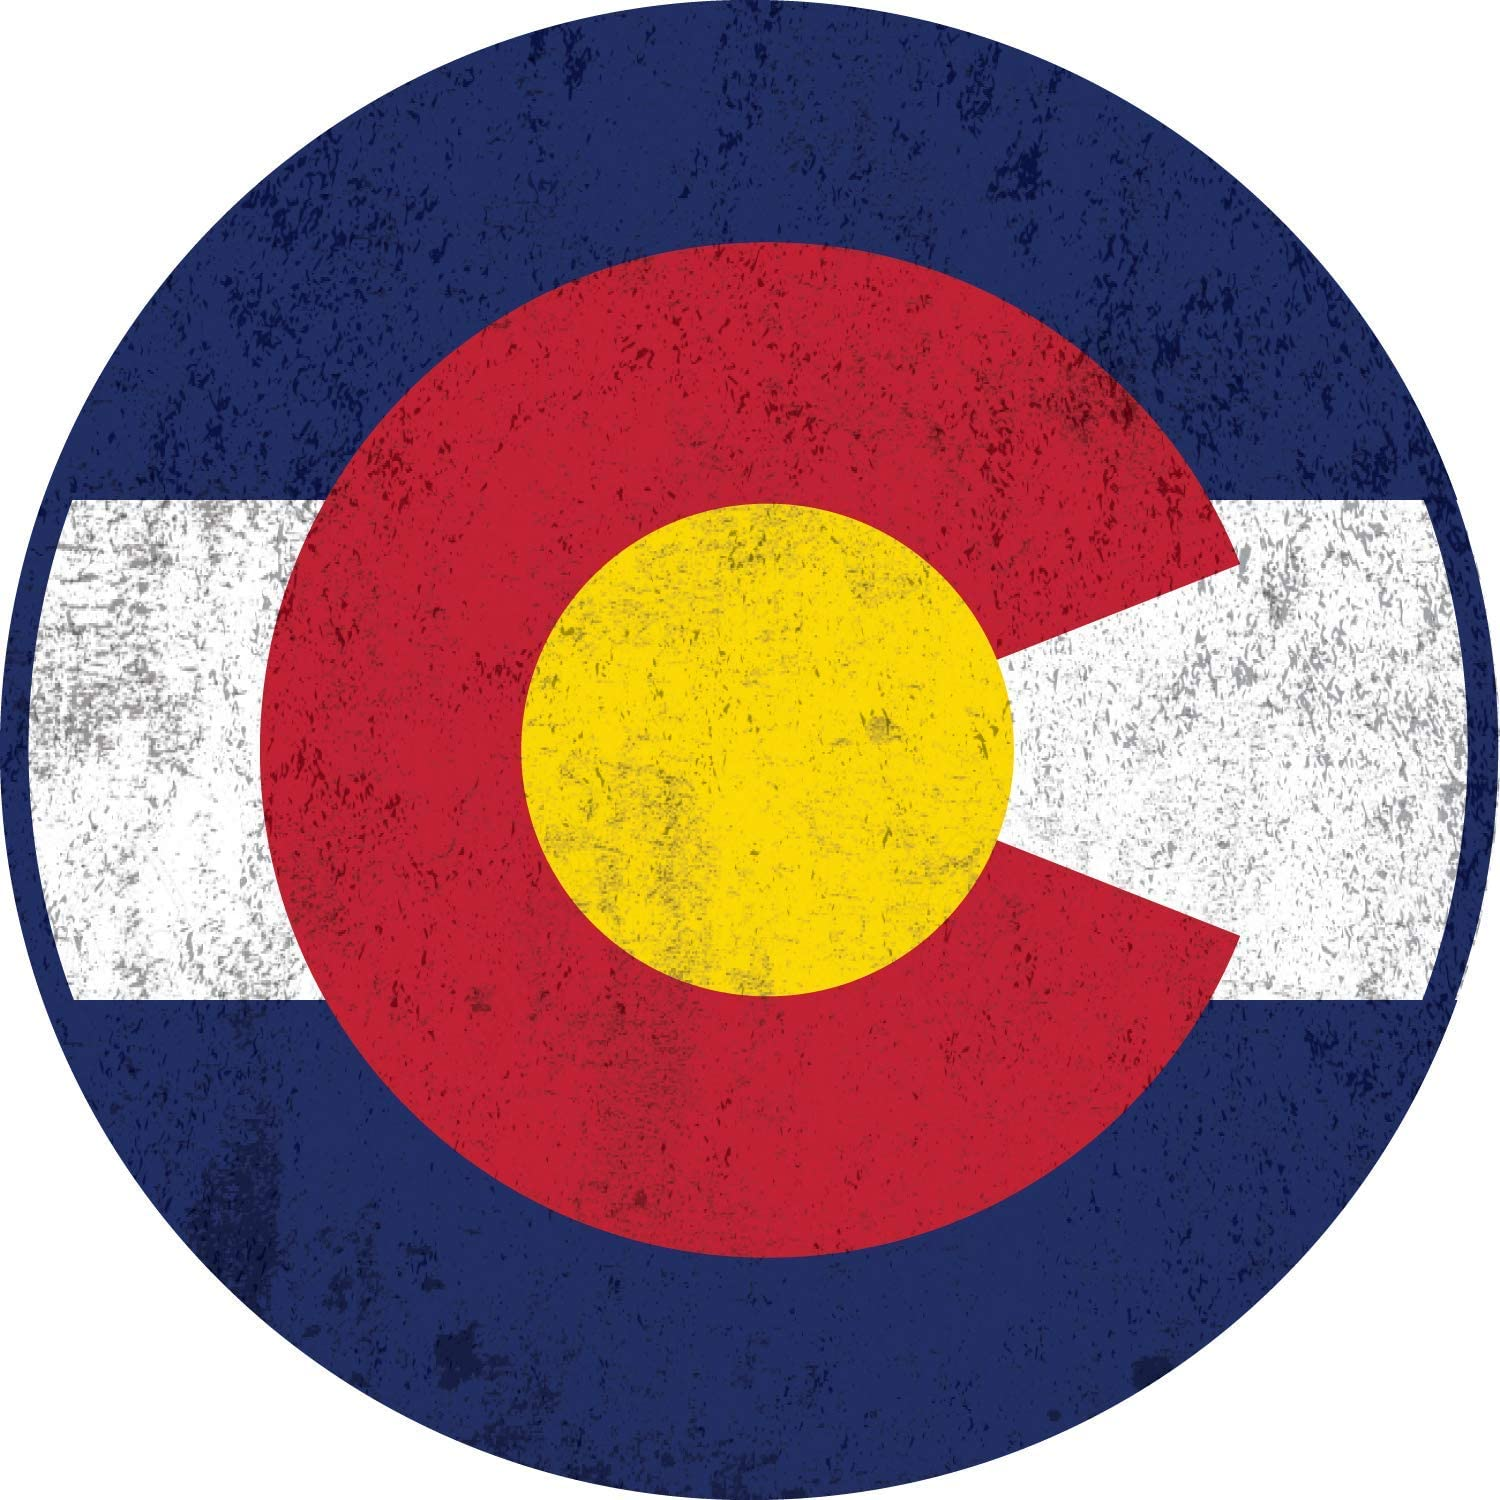 Car Magnet Distressed Colorado State Flag Magnetic Decal for Locker or Fridge, 5 1/2 Inch